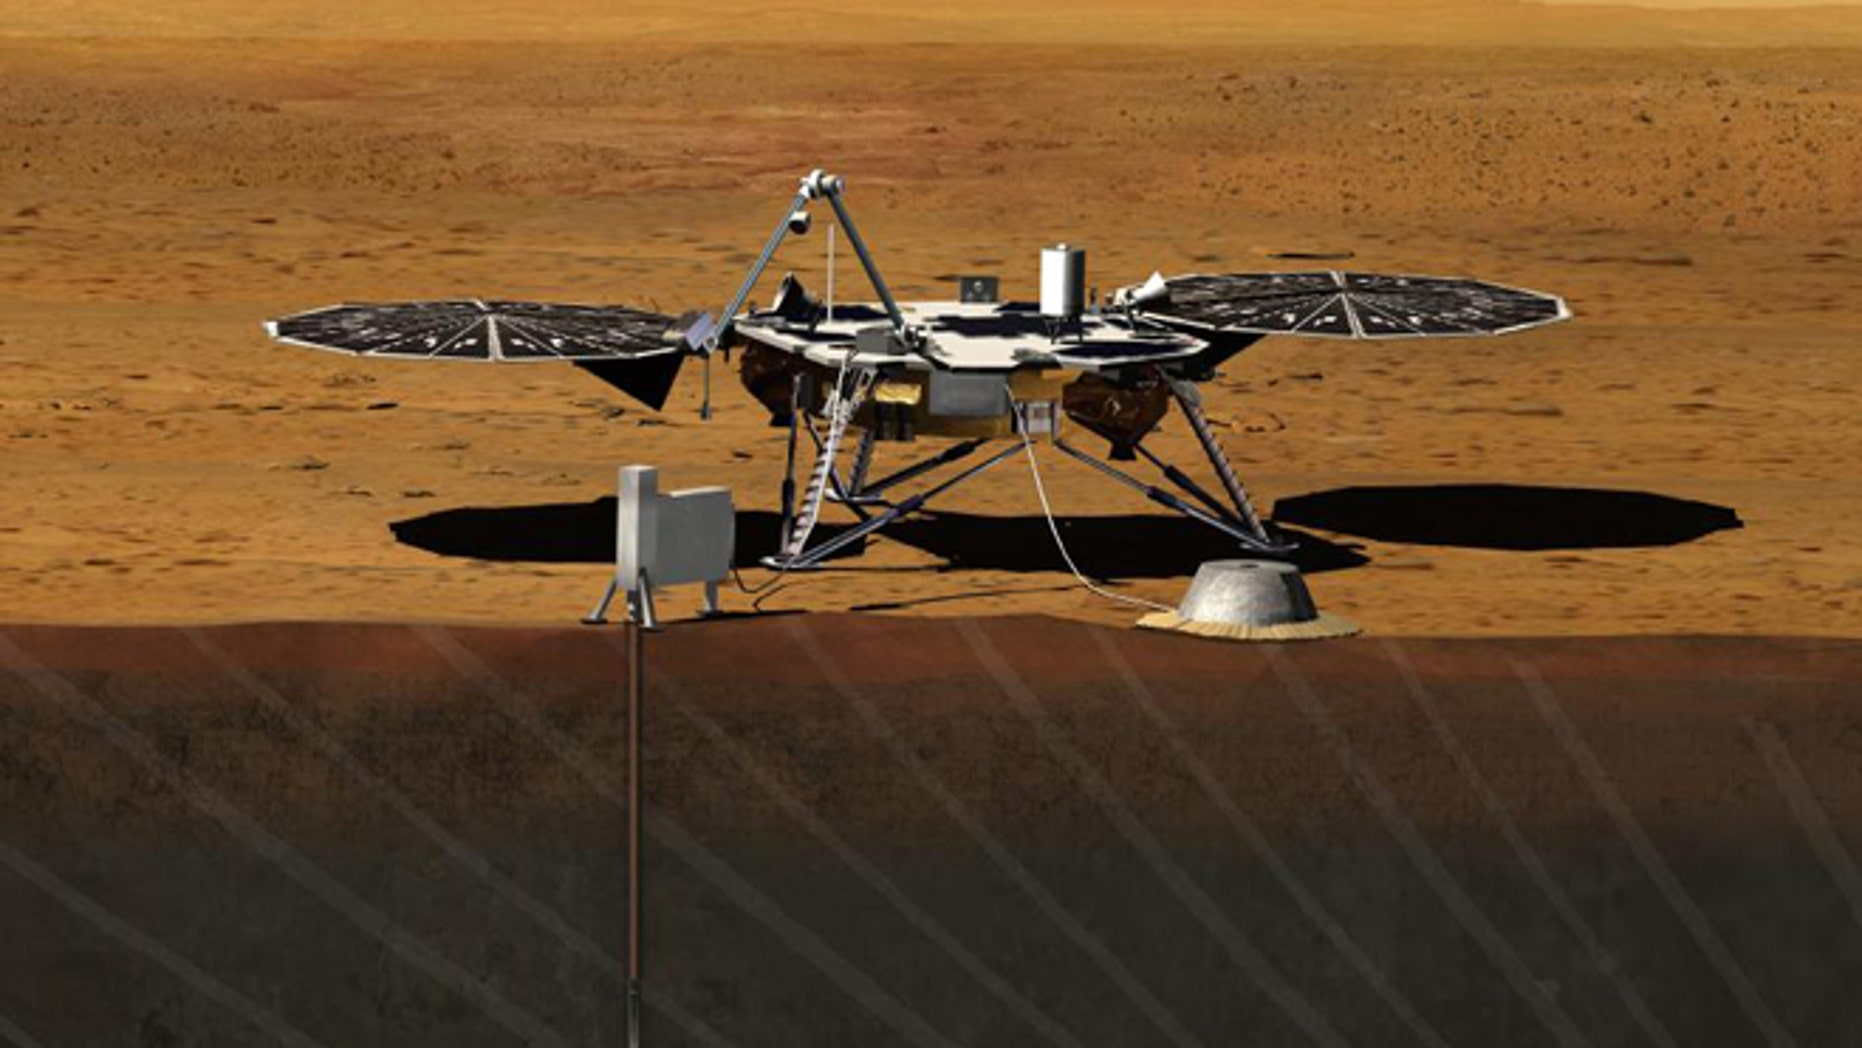 Artist rendition of the proposed InSight (Interior exploration using Seismic Investigations, Geodesy and Heat Transport) Lander. InSight is based on the proven Phoenix Mars spacecraft and lander design with state-of-the-art avionics.